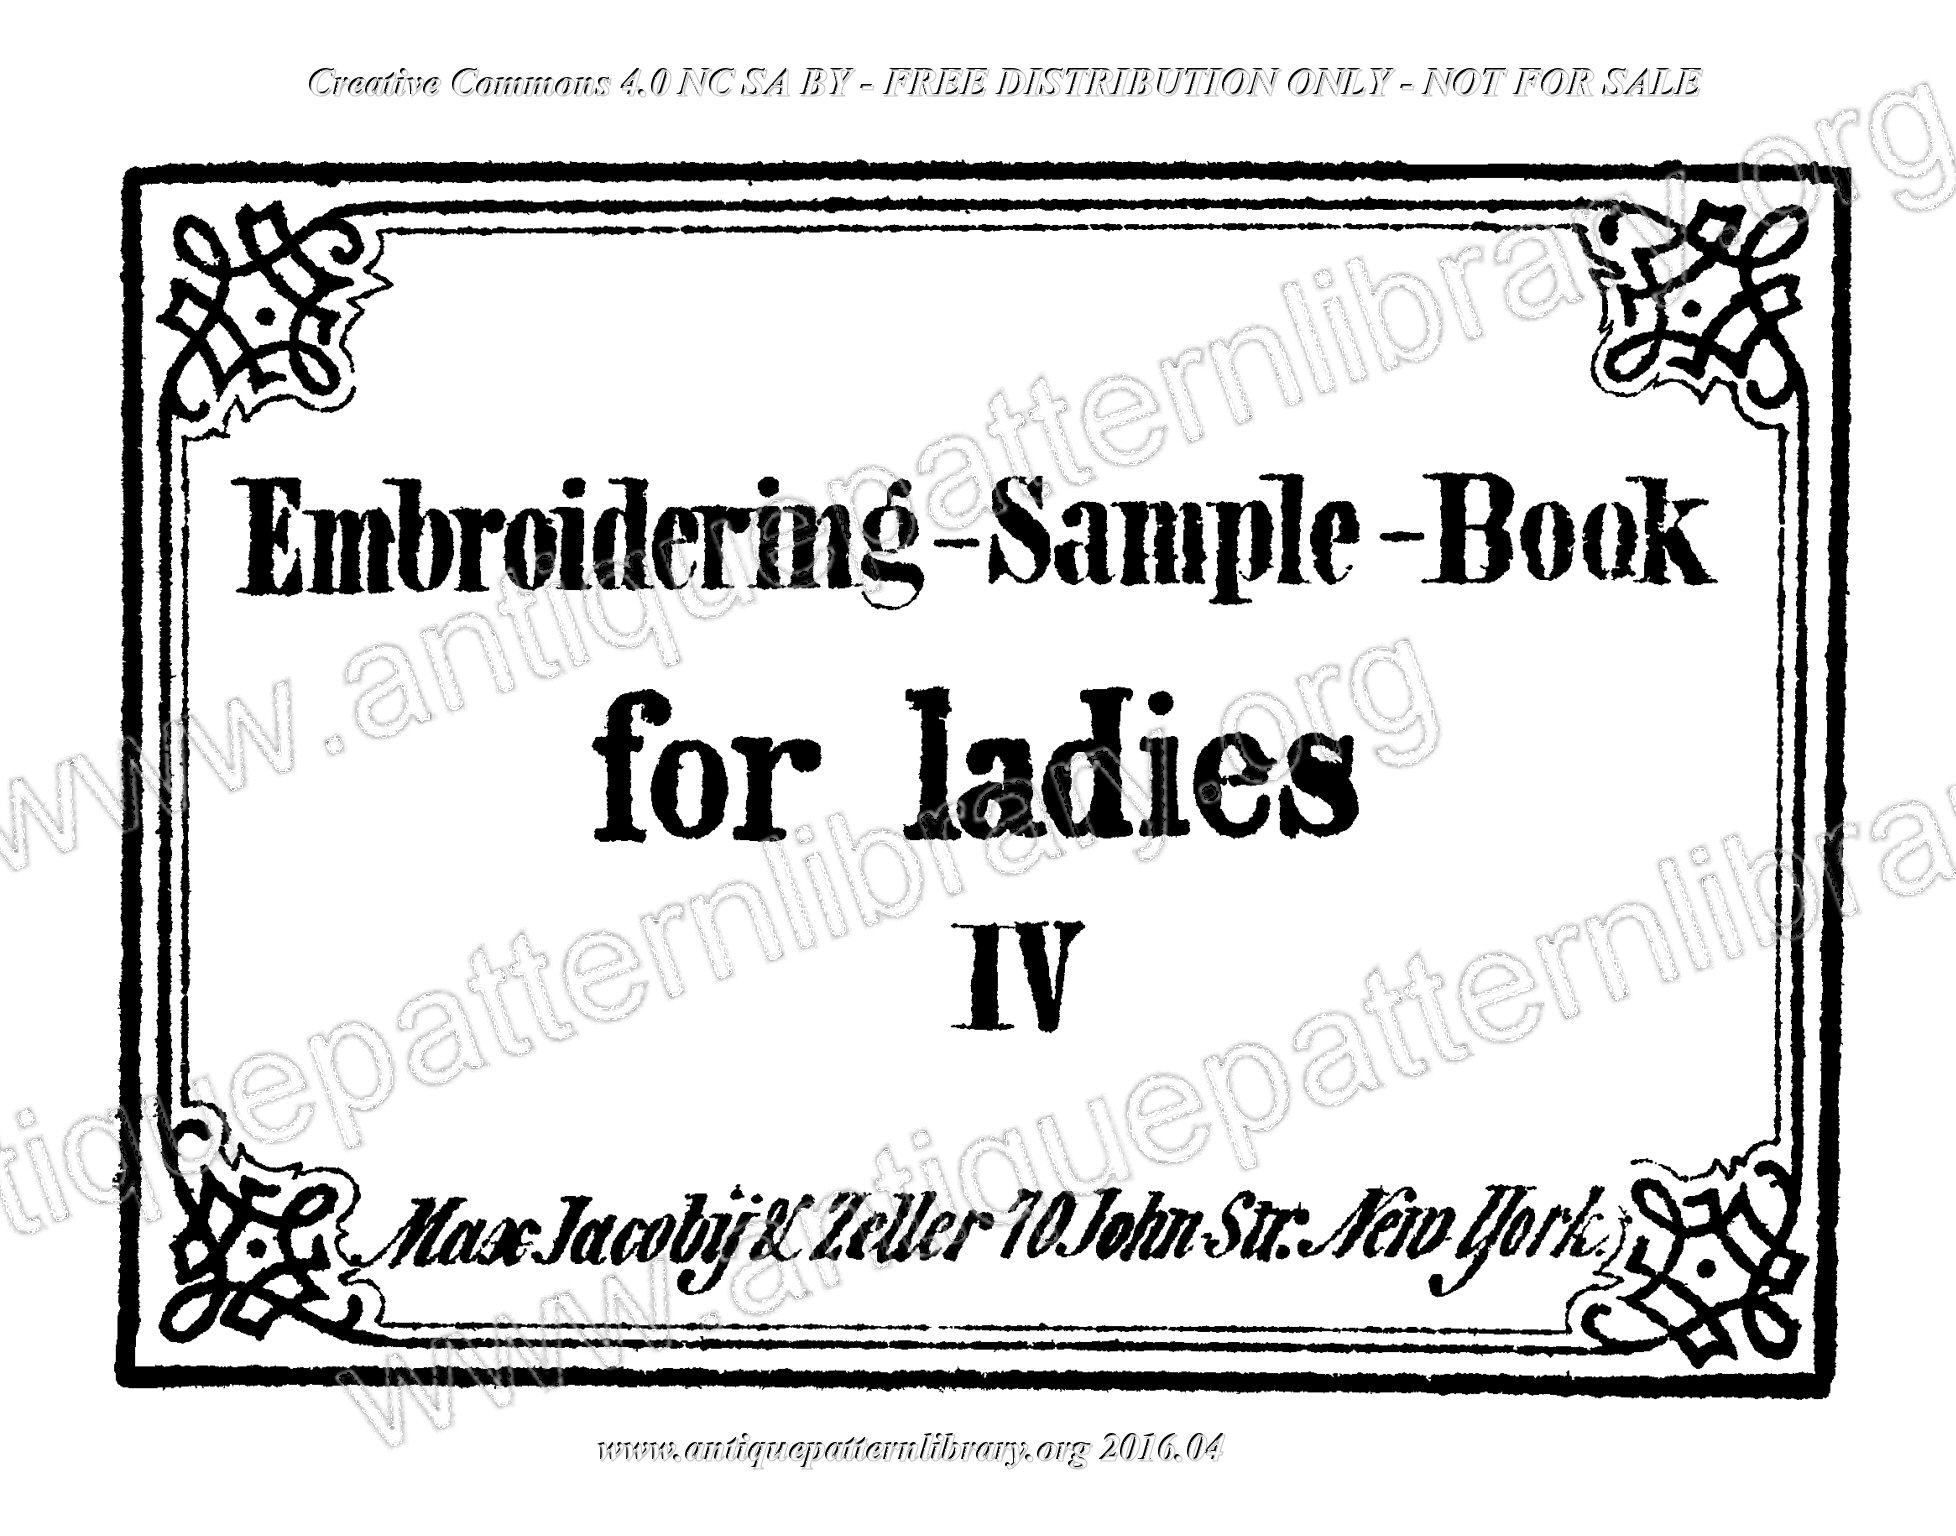 G-MR001  Embroidering-Sample-Book for ladies